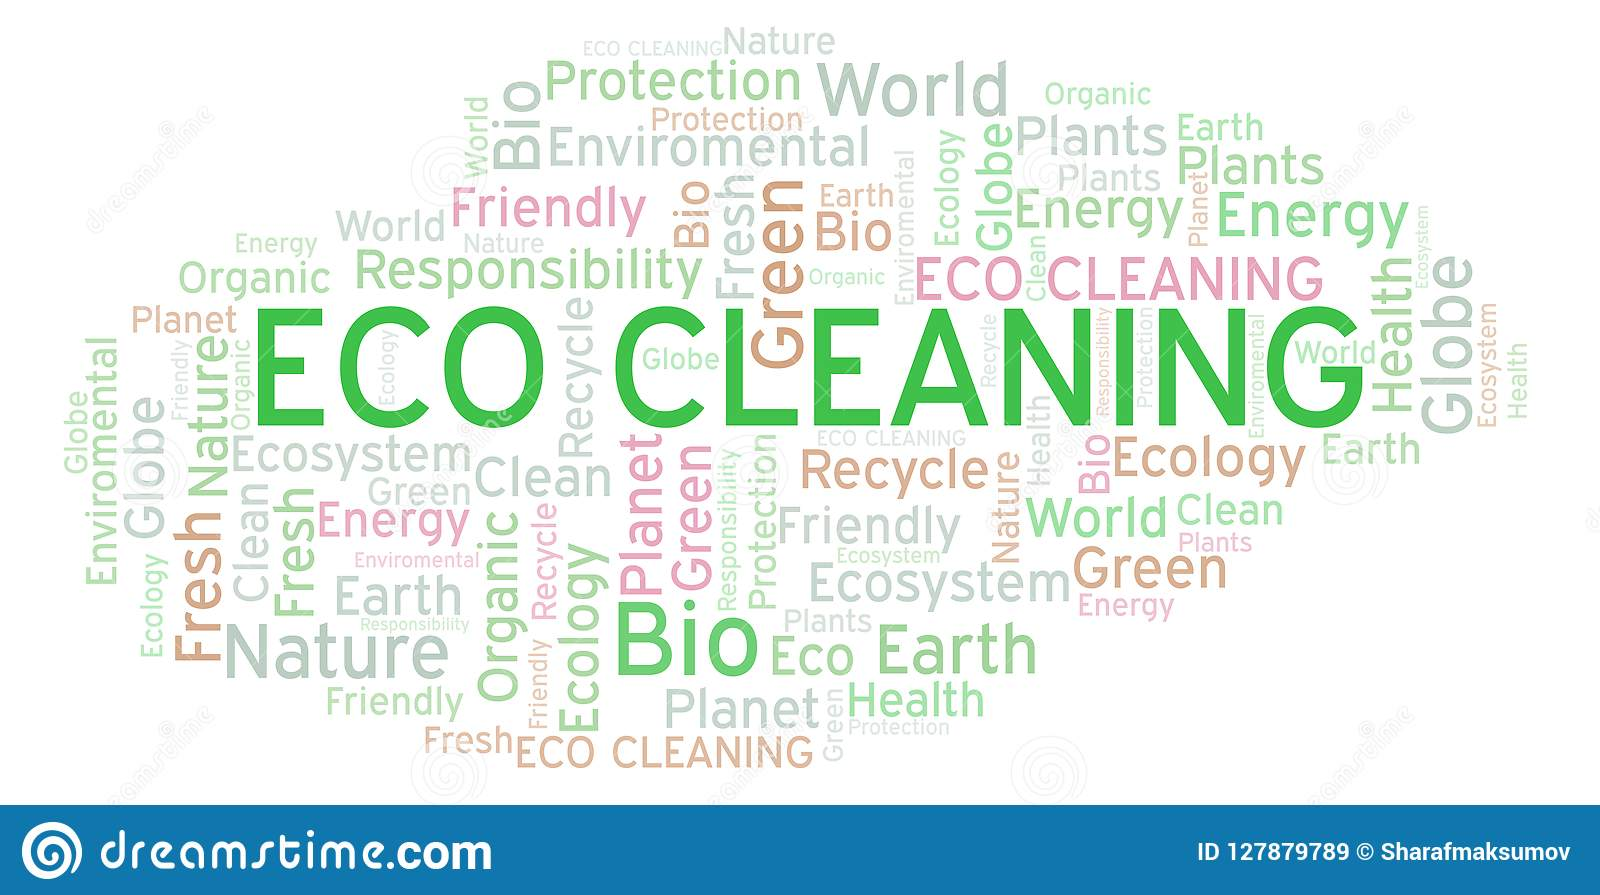 Eco Cleaning word cloud.